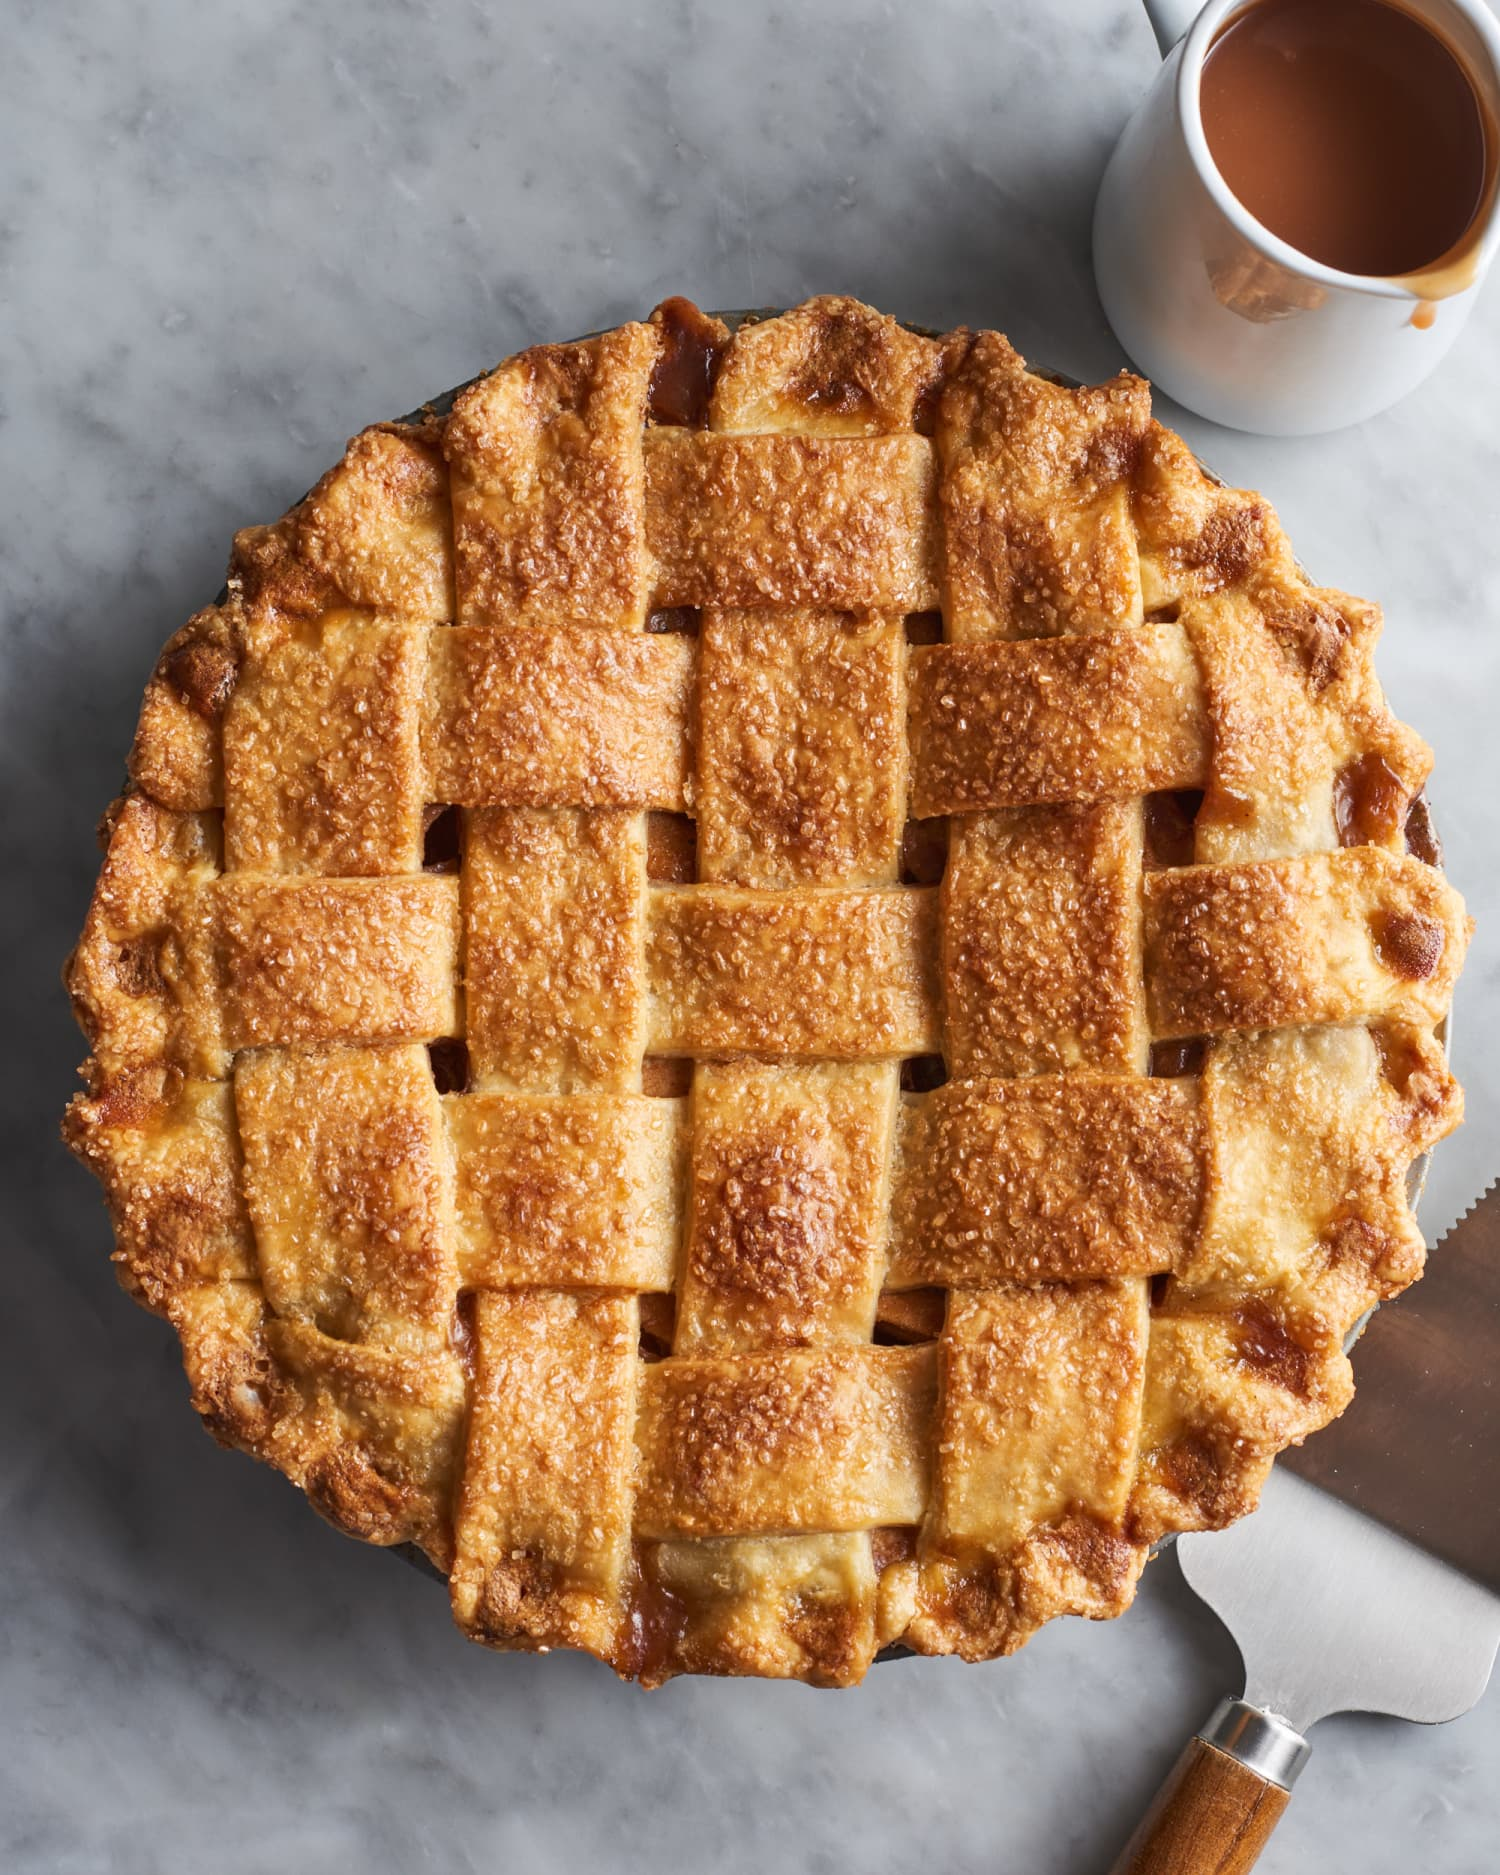 Salted Caramel Apple Pie Tastes Like a Candied Apple